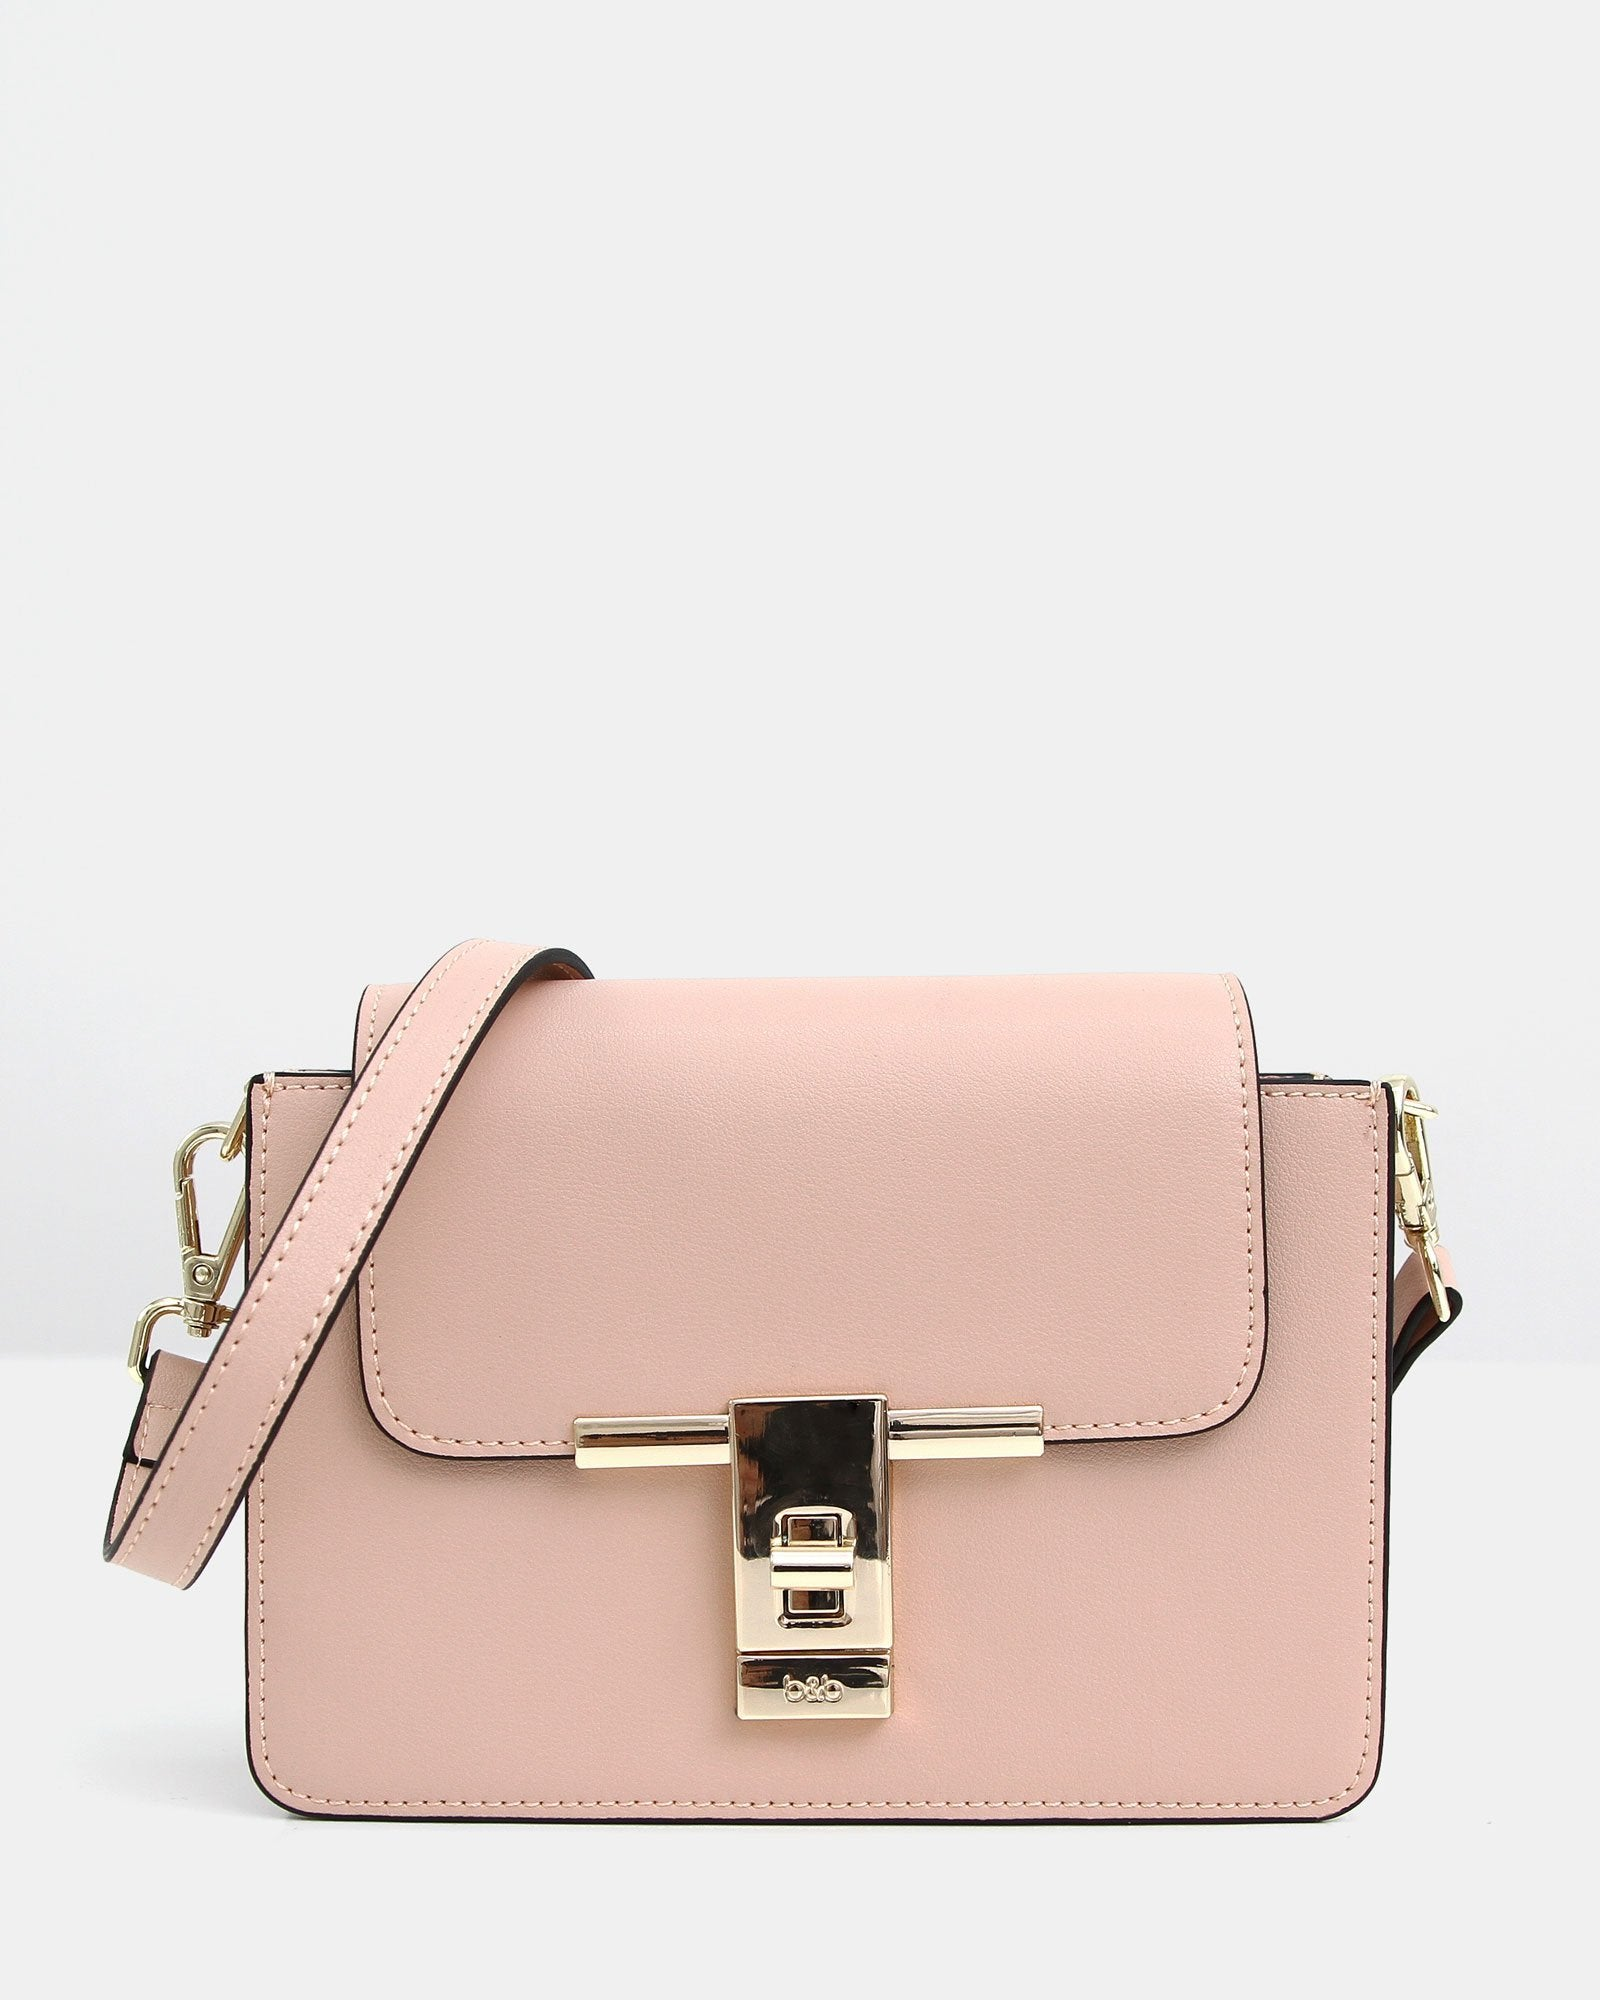 Seattle Night Leather Cross-Body - Blush